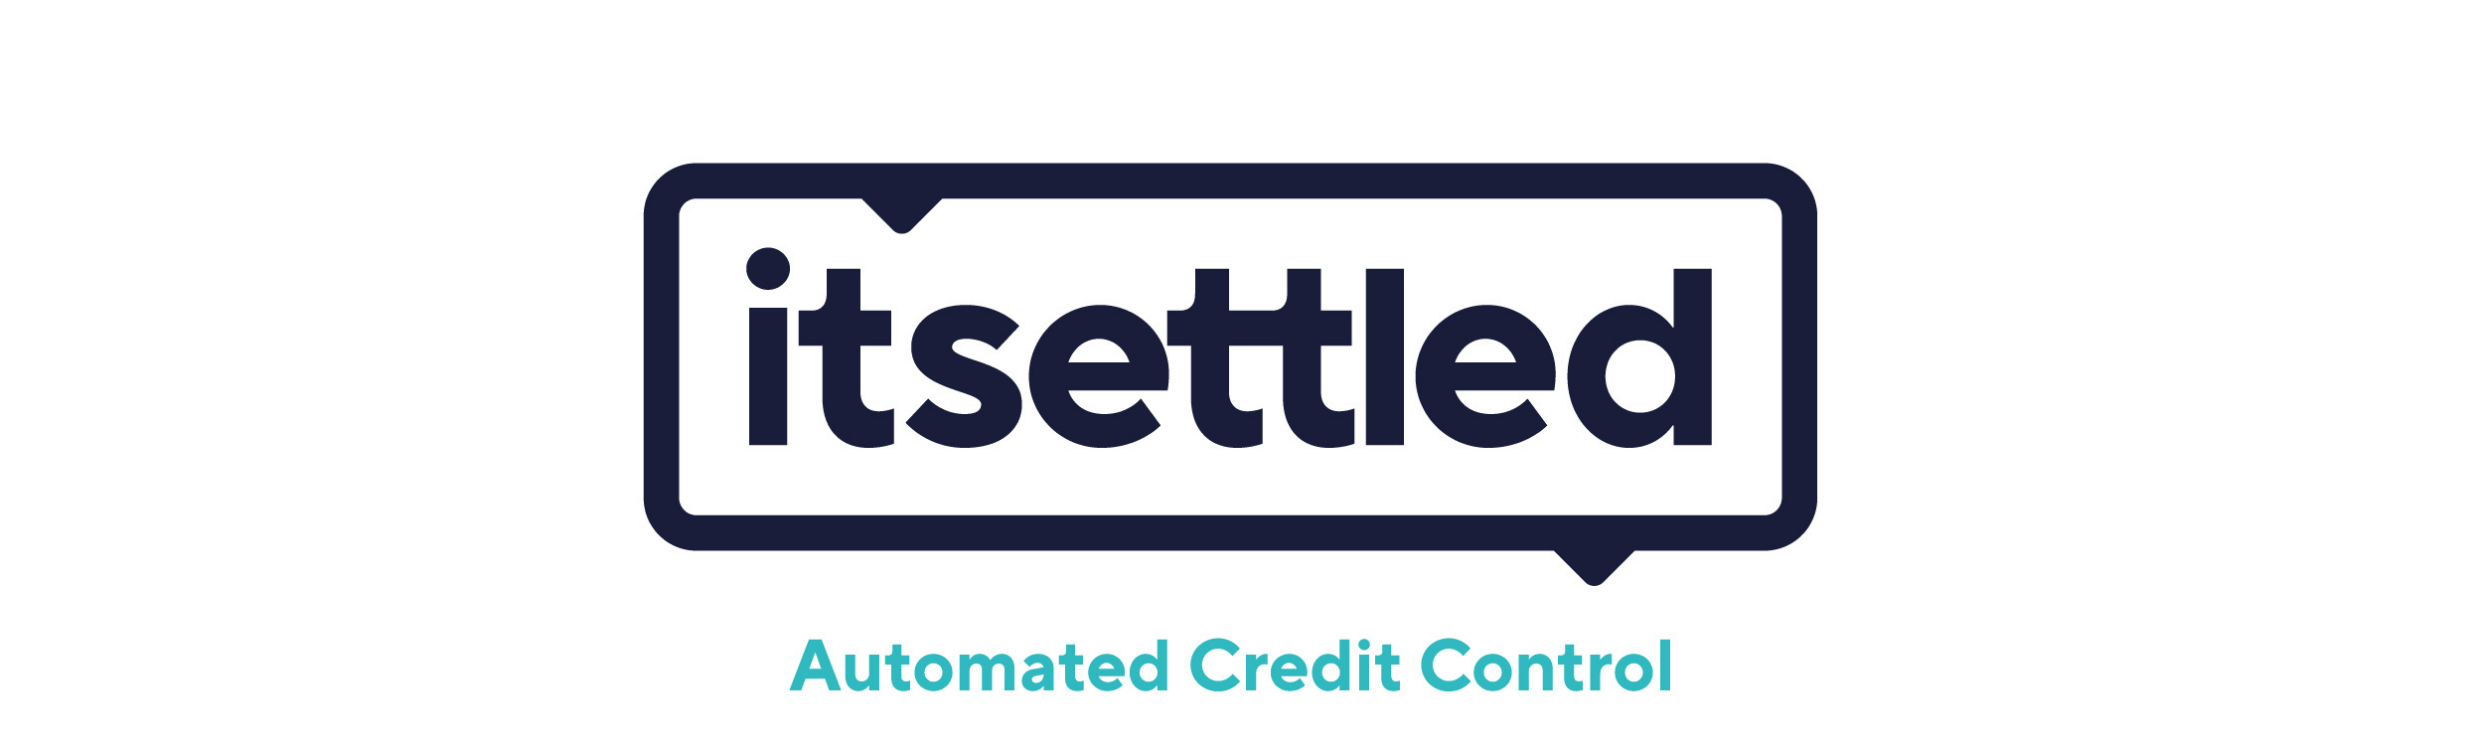 itsettled - automated credit control